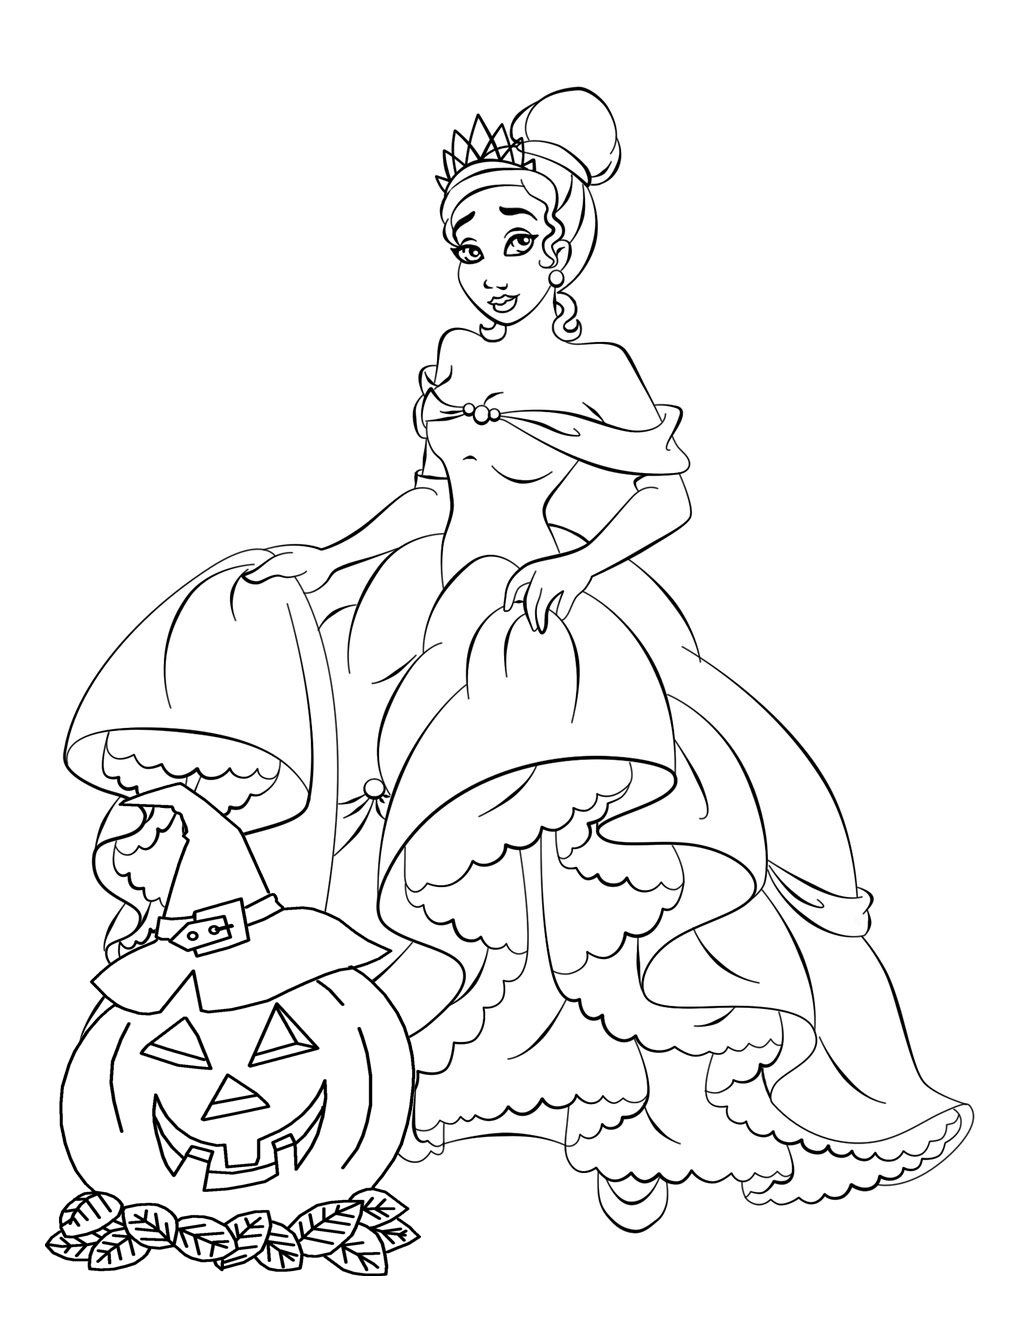 disney princess free disney halloween coloring pages - Halloween Coloring Pages Disney